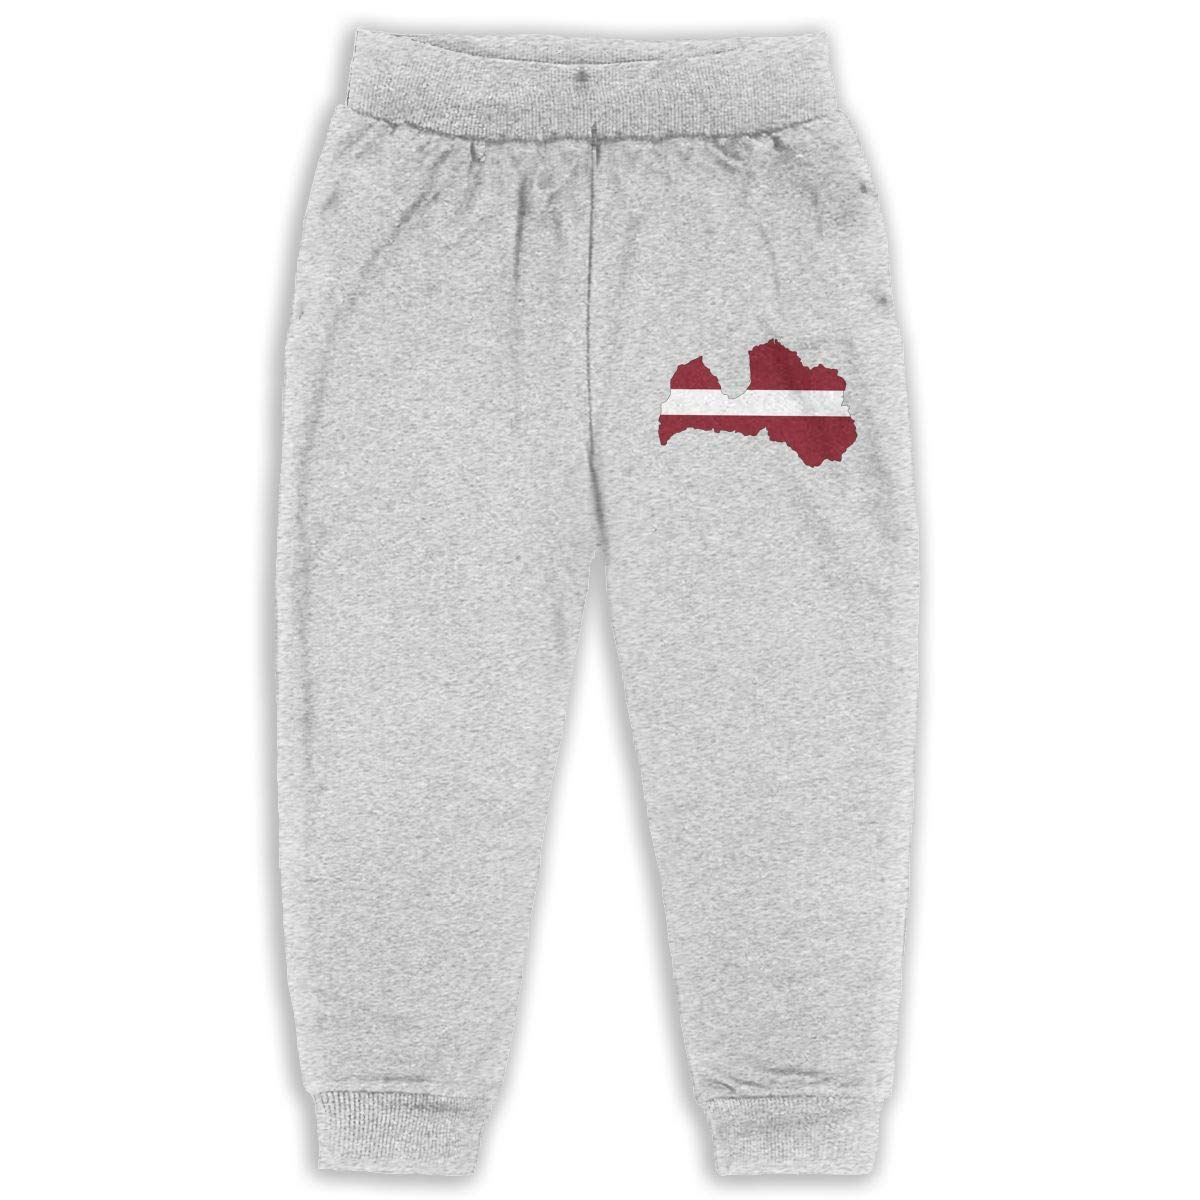 DaXi1 Latvia Sweatpants for Boys /& Girls Fleece Active Joggers Elastic Pants